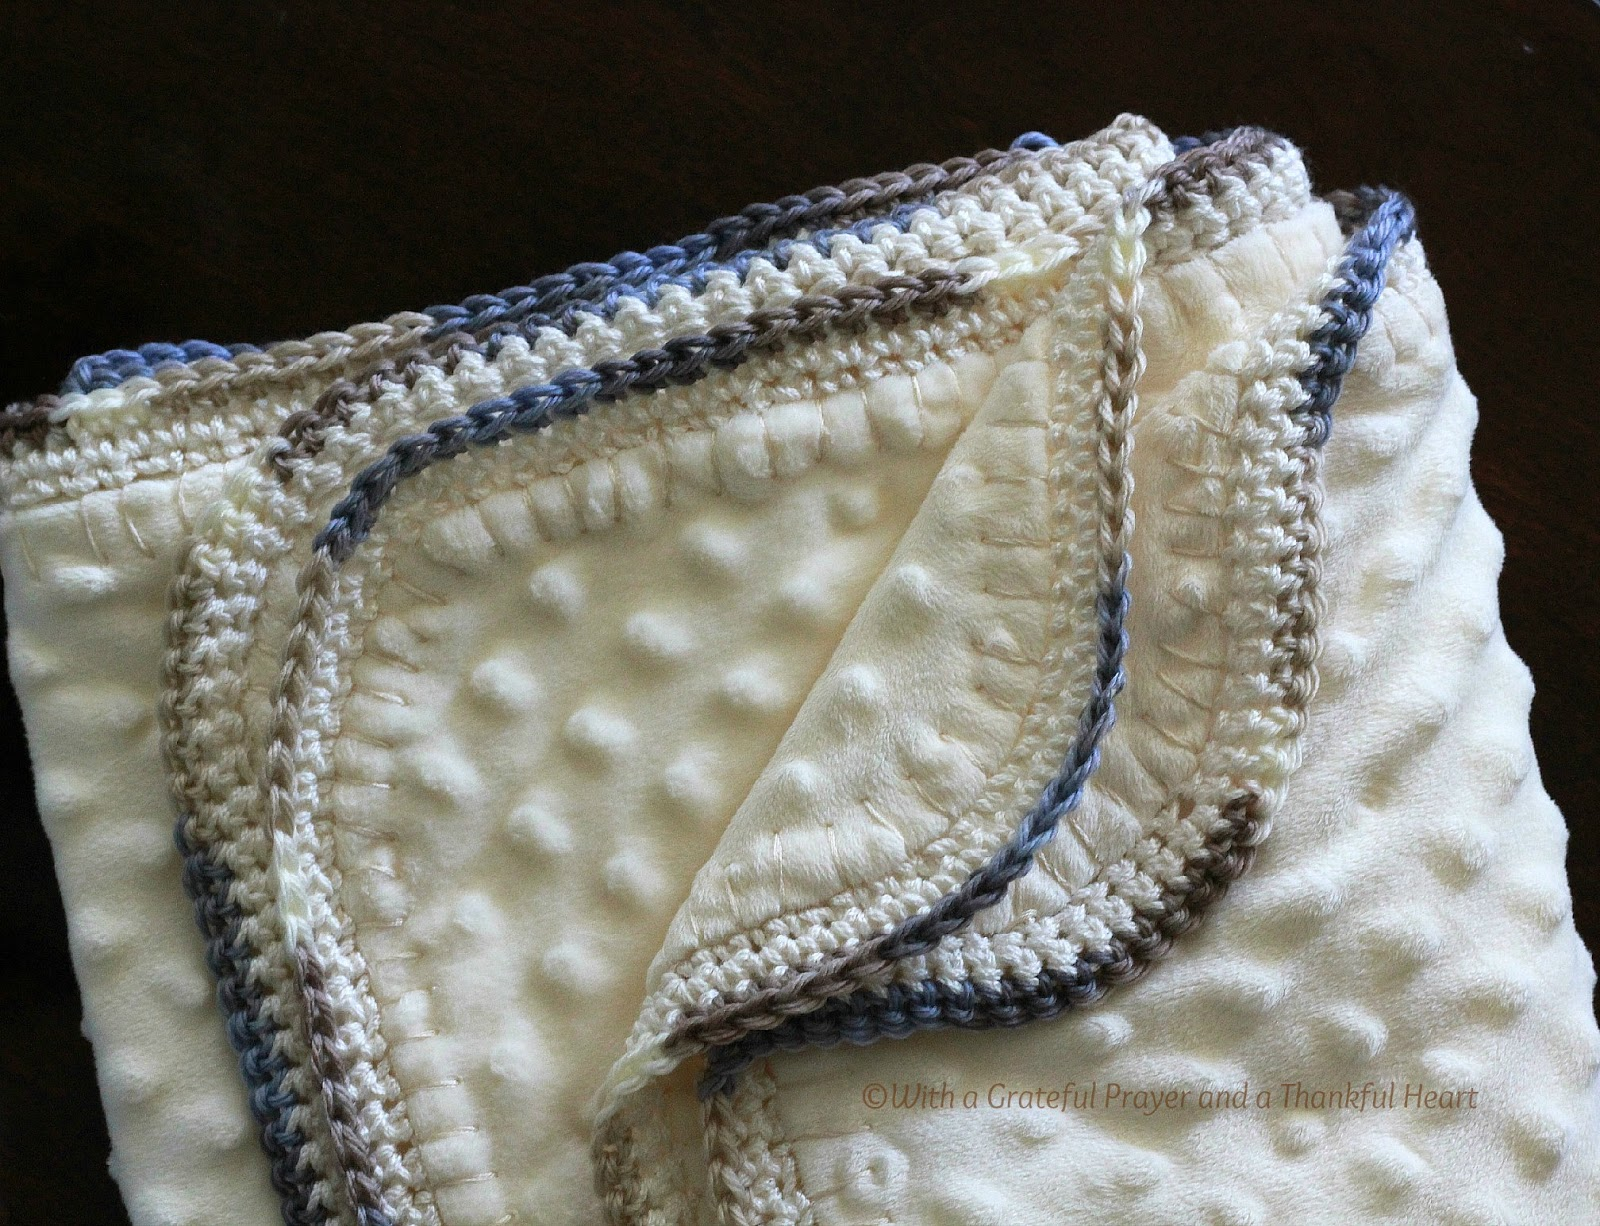 Crochet Patterns For Baby Blanket Edges : With a Grateful Prayer and a Thankful Heart: Crochet Edge ...